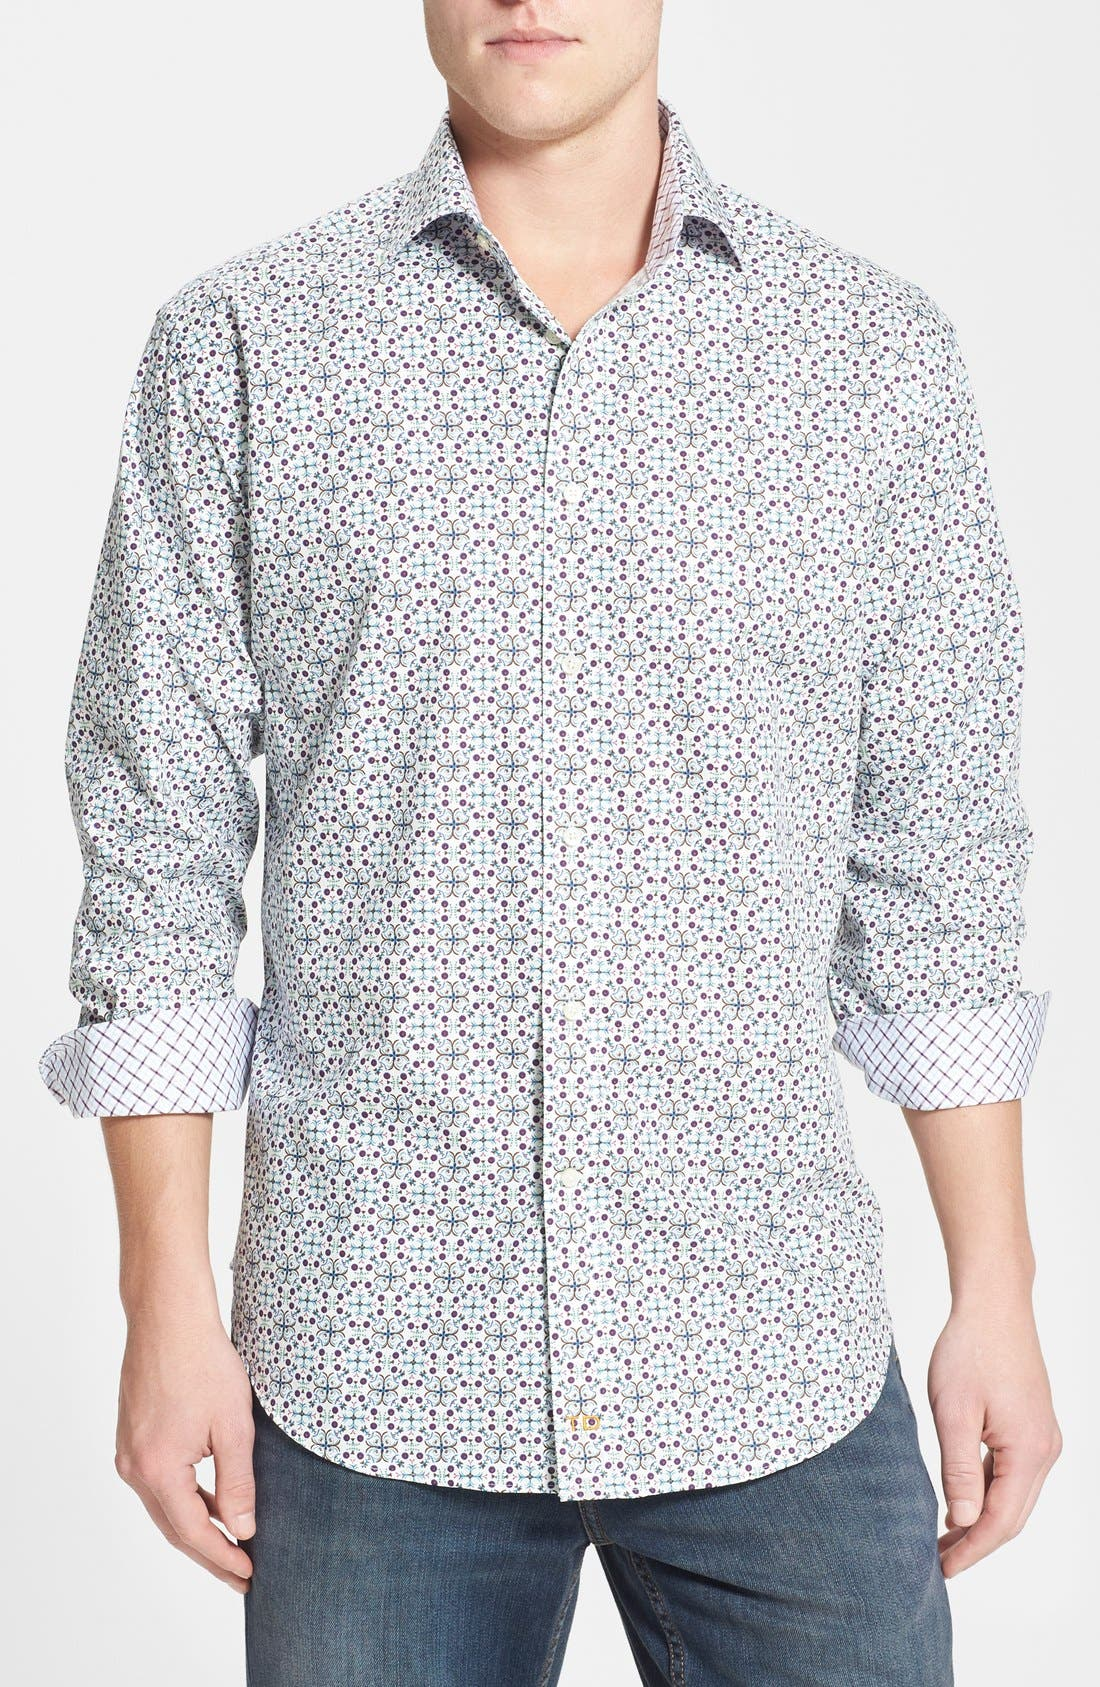 Alternate Image 1 Selected - Thomas Dean Regular Fit Print Sport Shirt